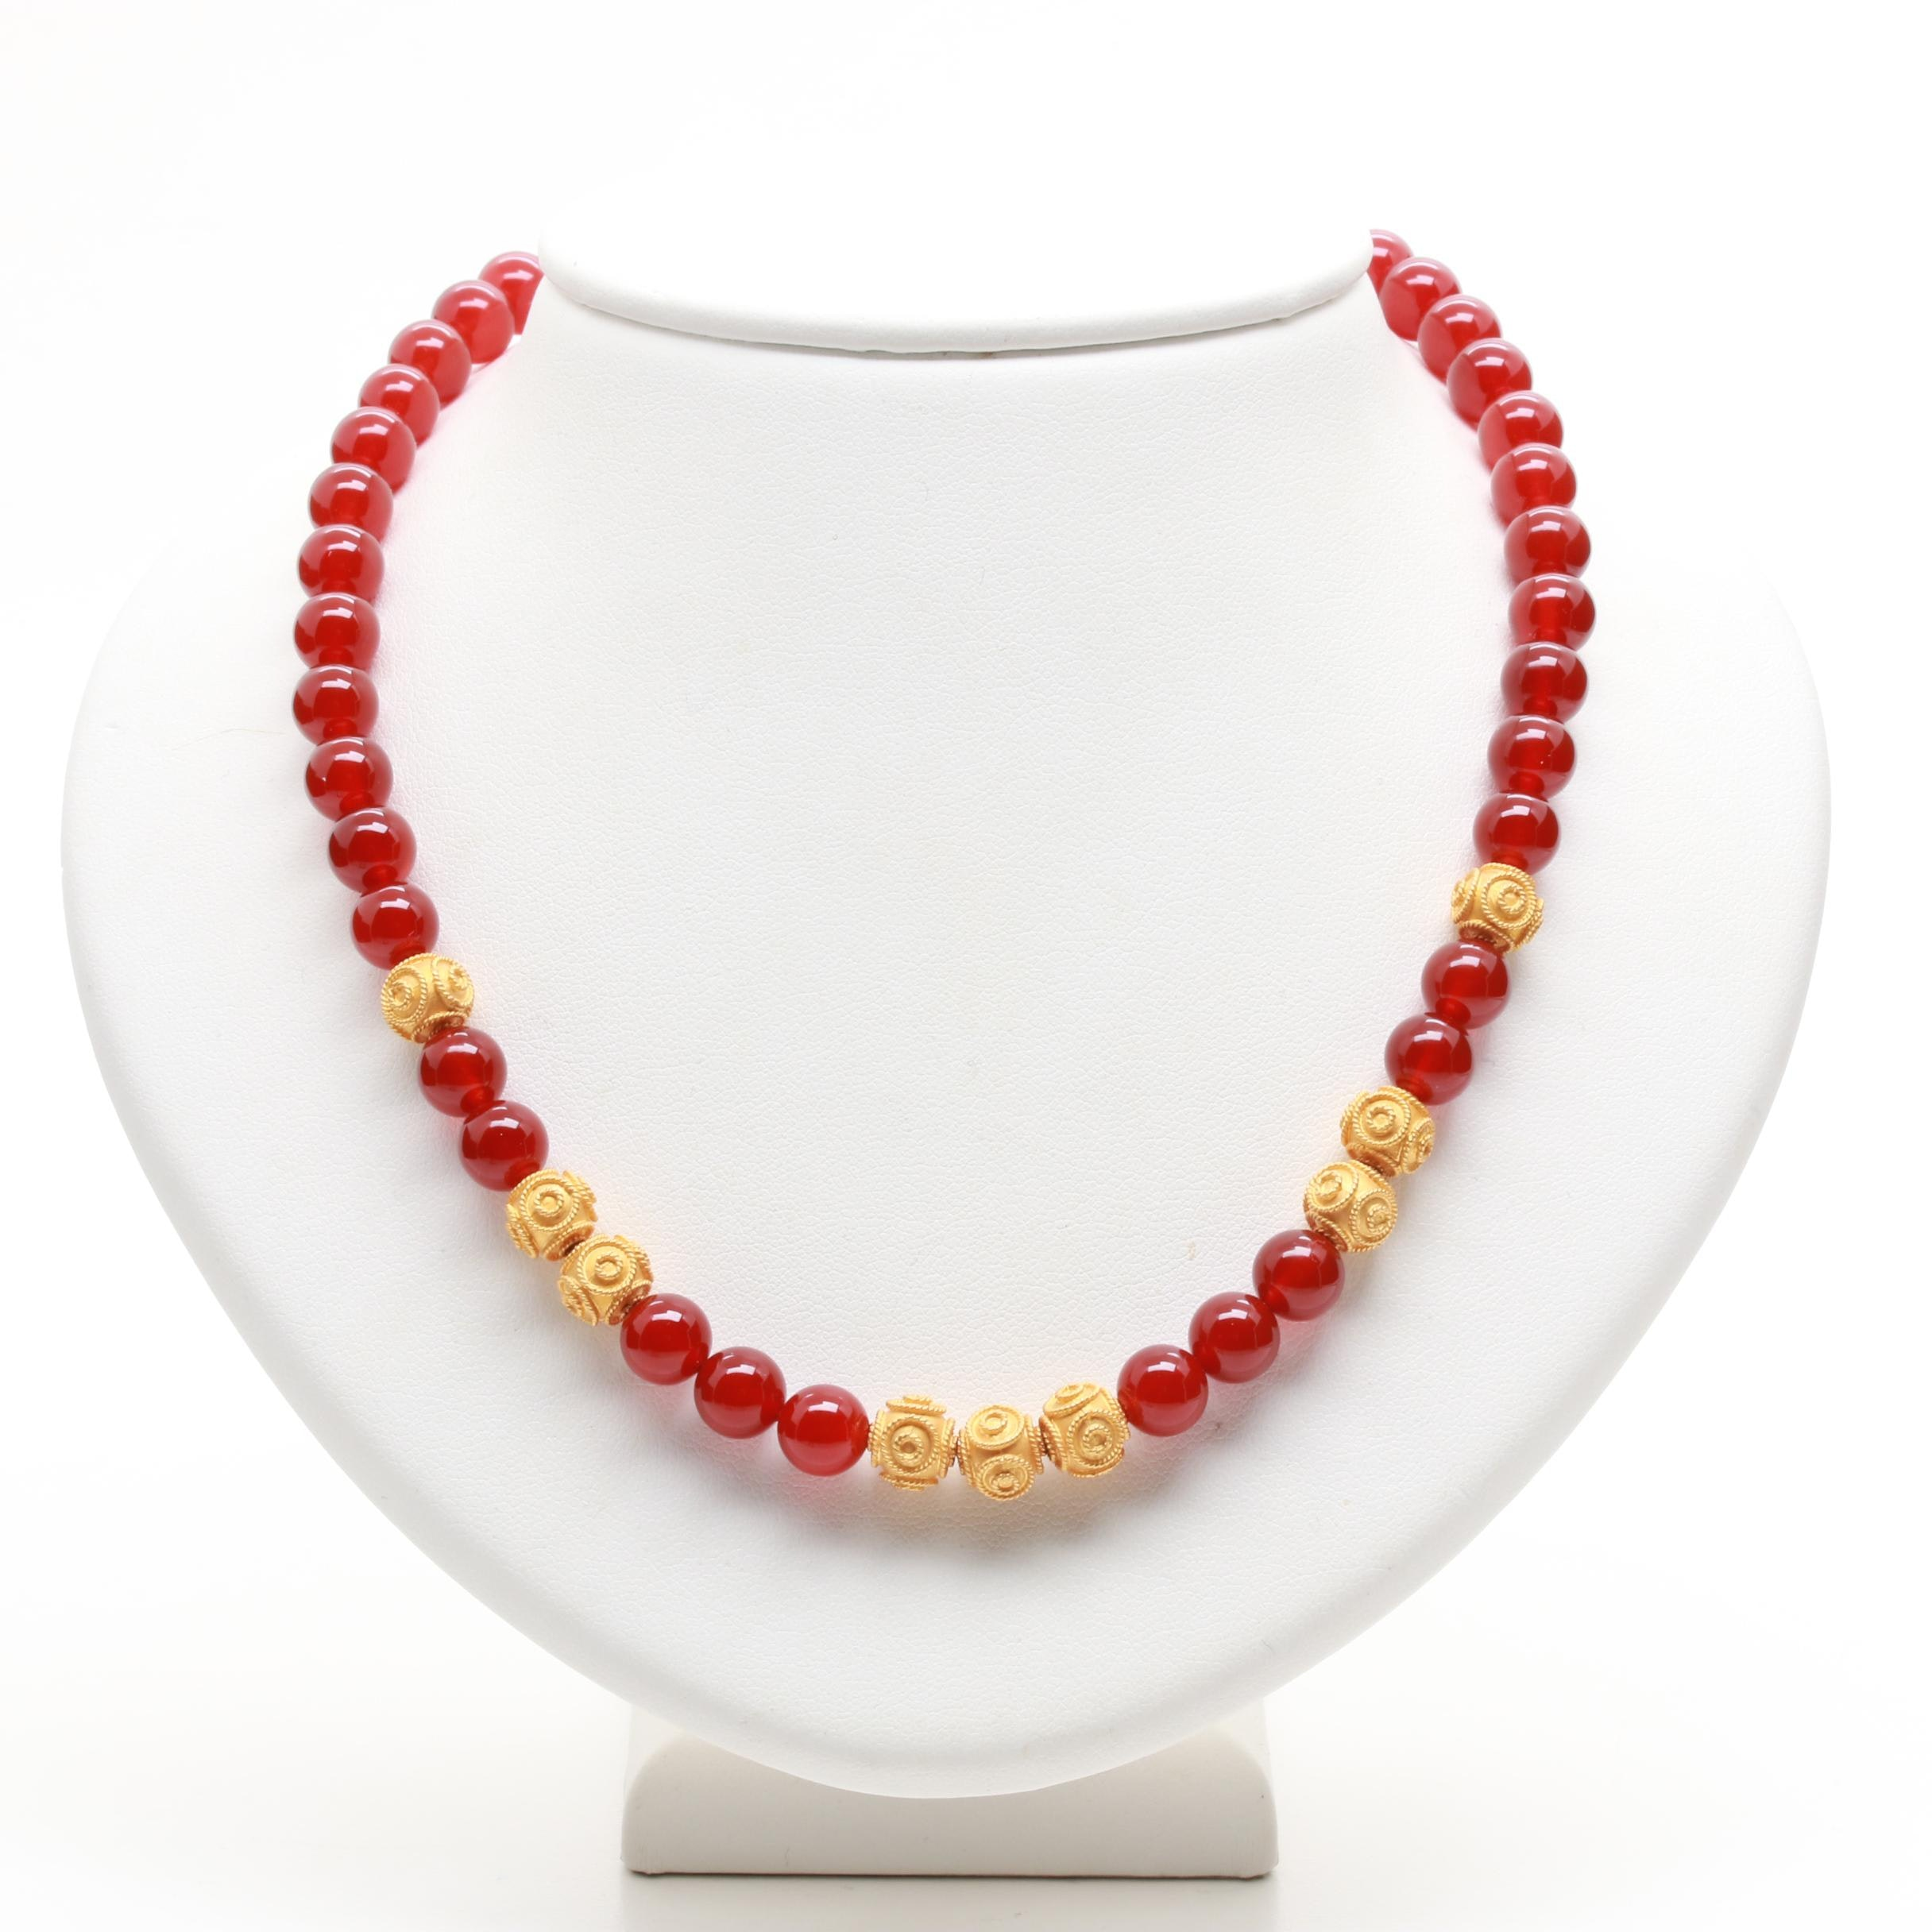 14K and 18K Yellow Gold and Carnelian Beaded Necklace